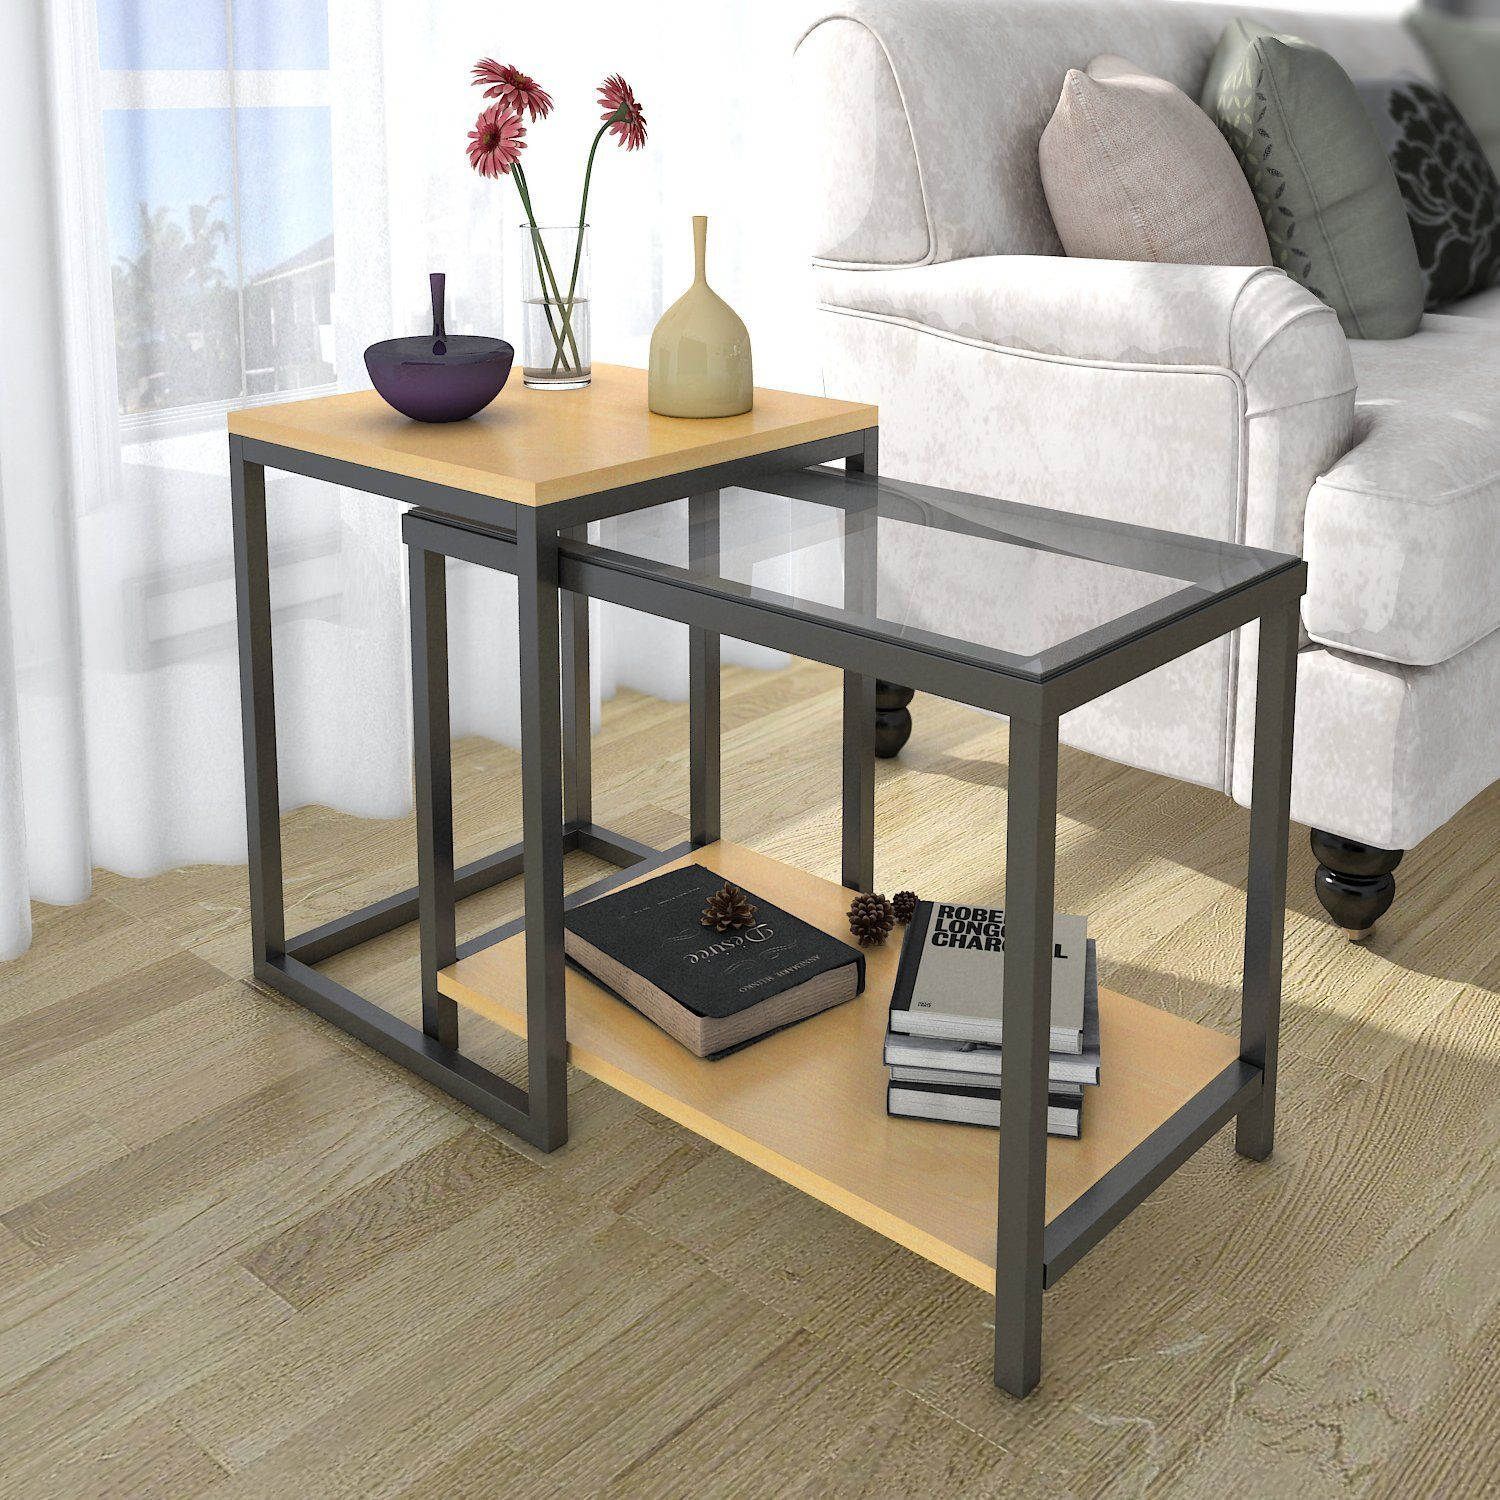 Amazon lifewit 2 piece end table nesting sofa side table set amazon lifewit 2 piece end table nesting sofa side table set watchthetrailerfo